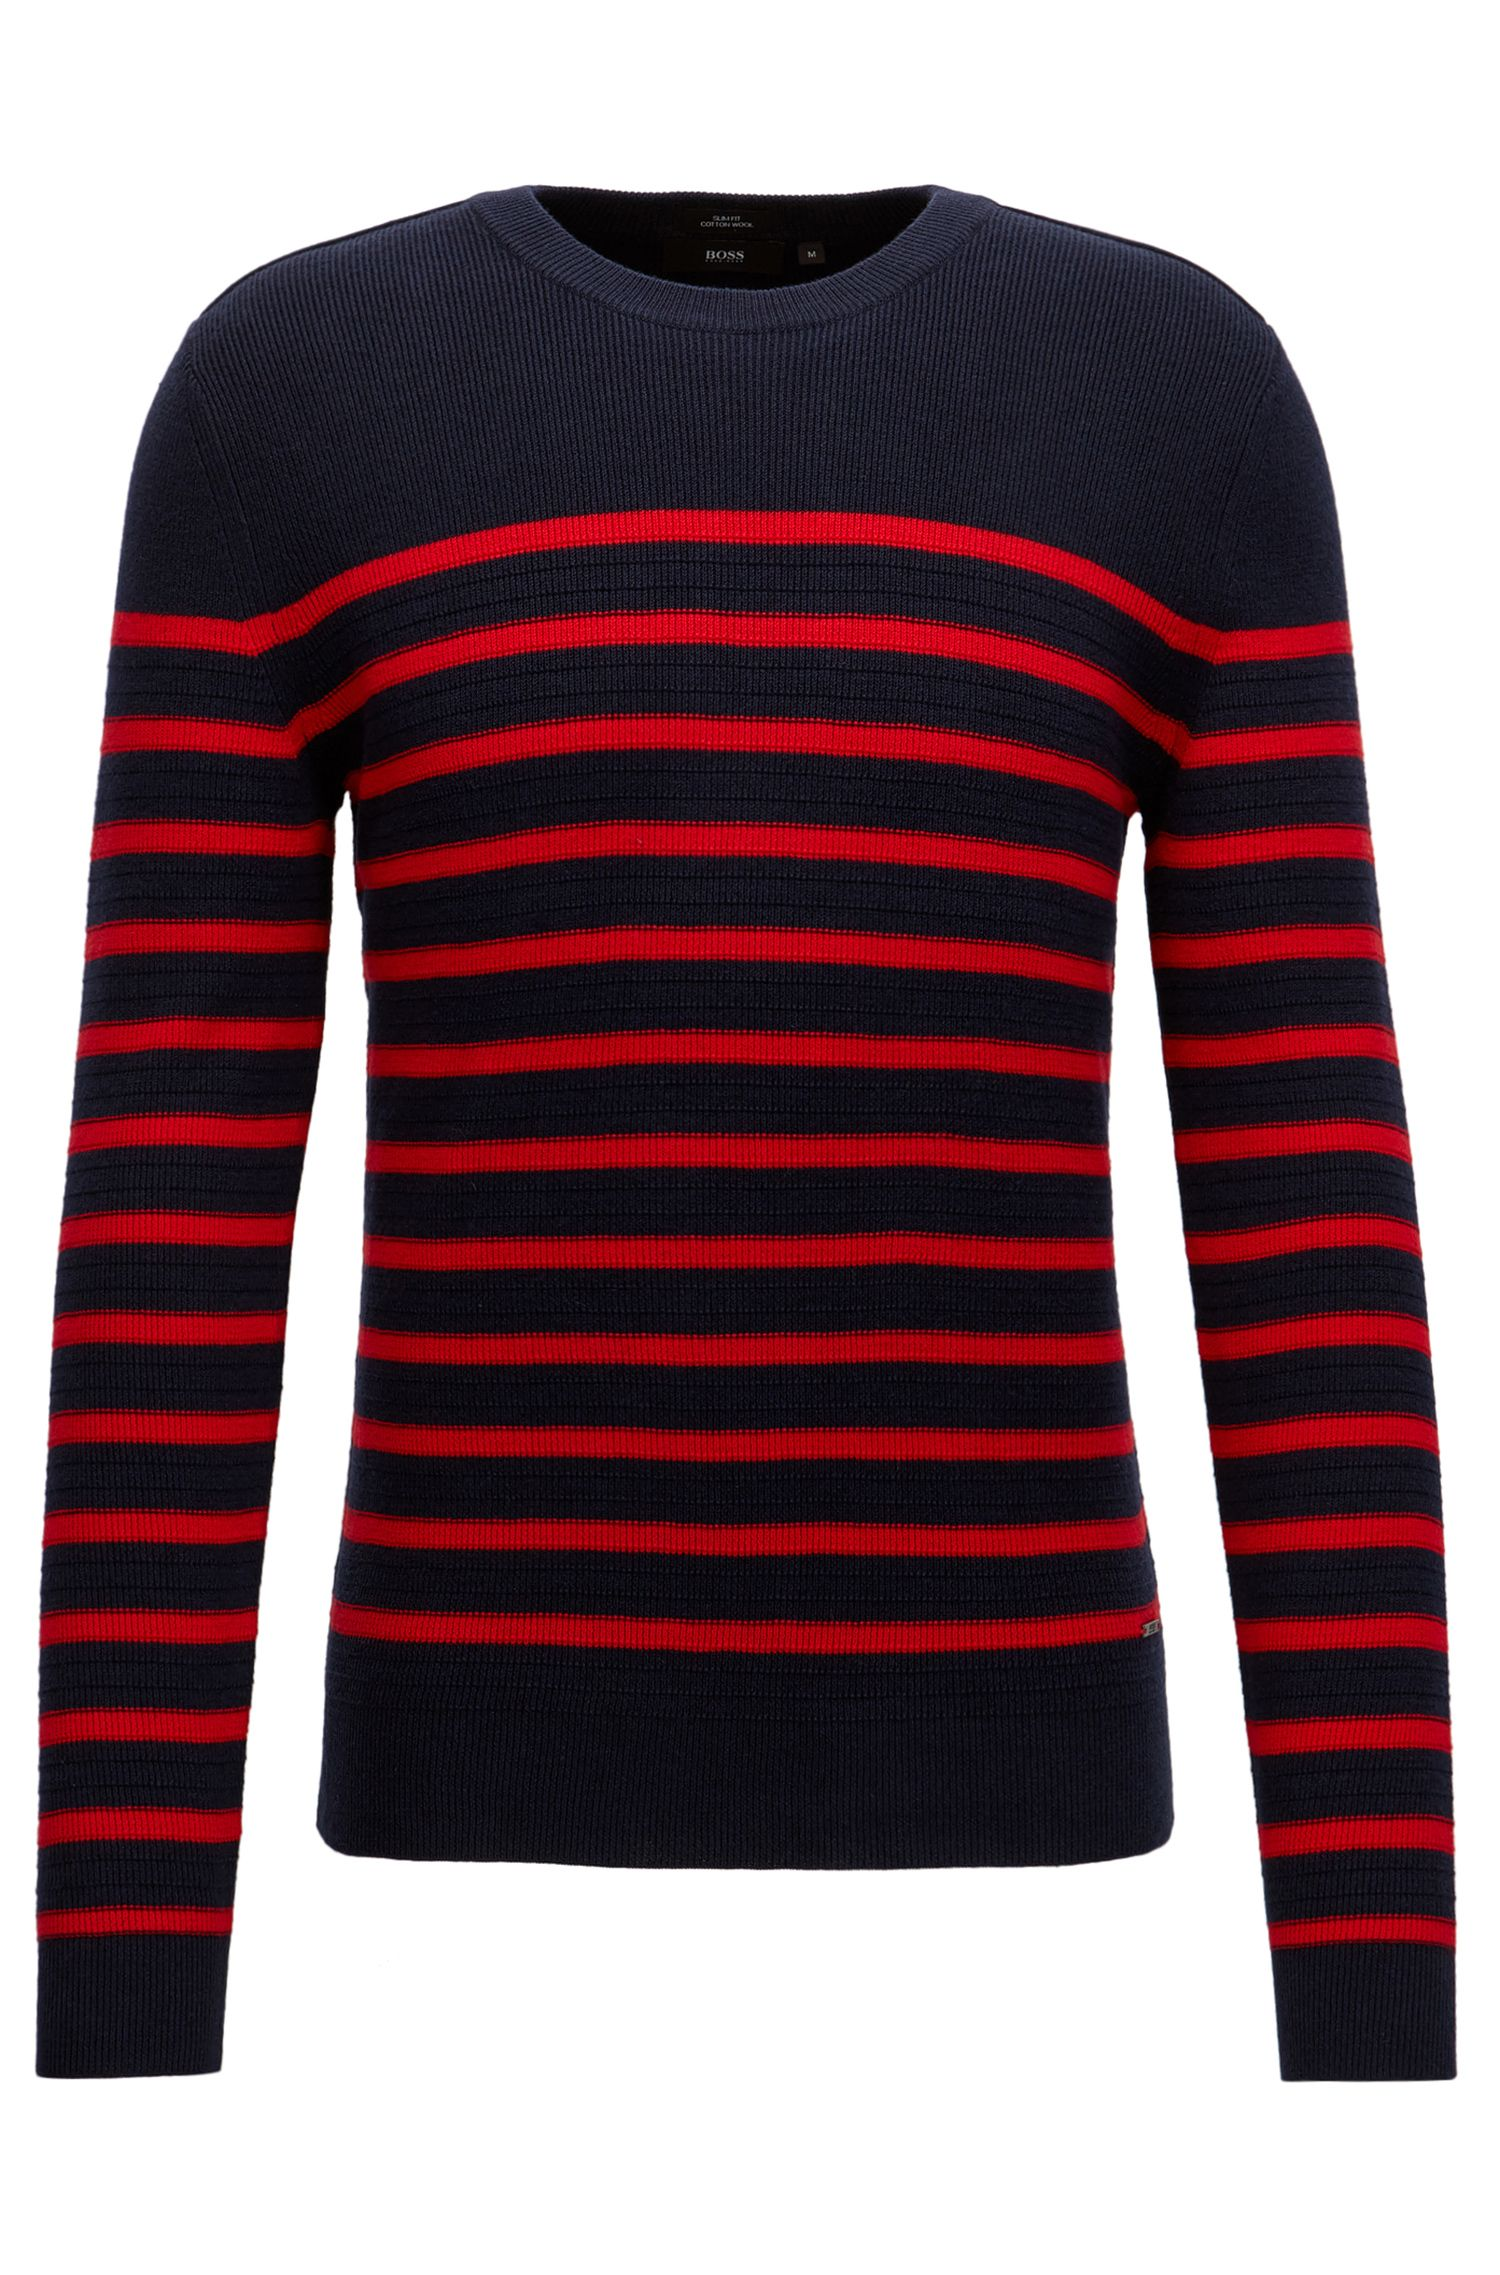 Breton stripe sweater in a structured wool-cotton blend